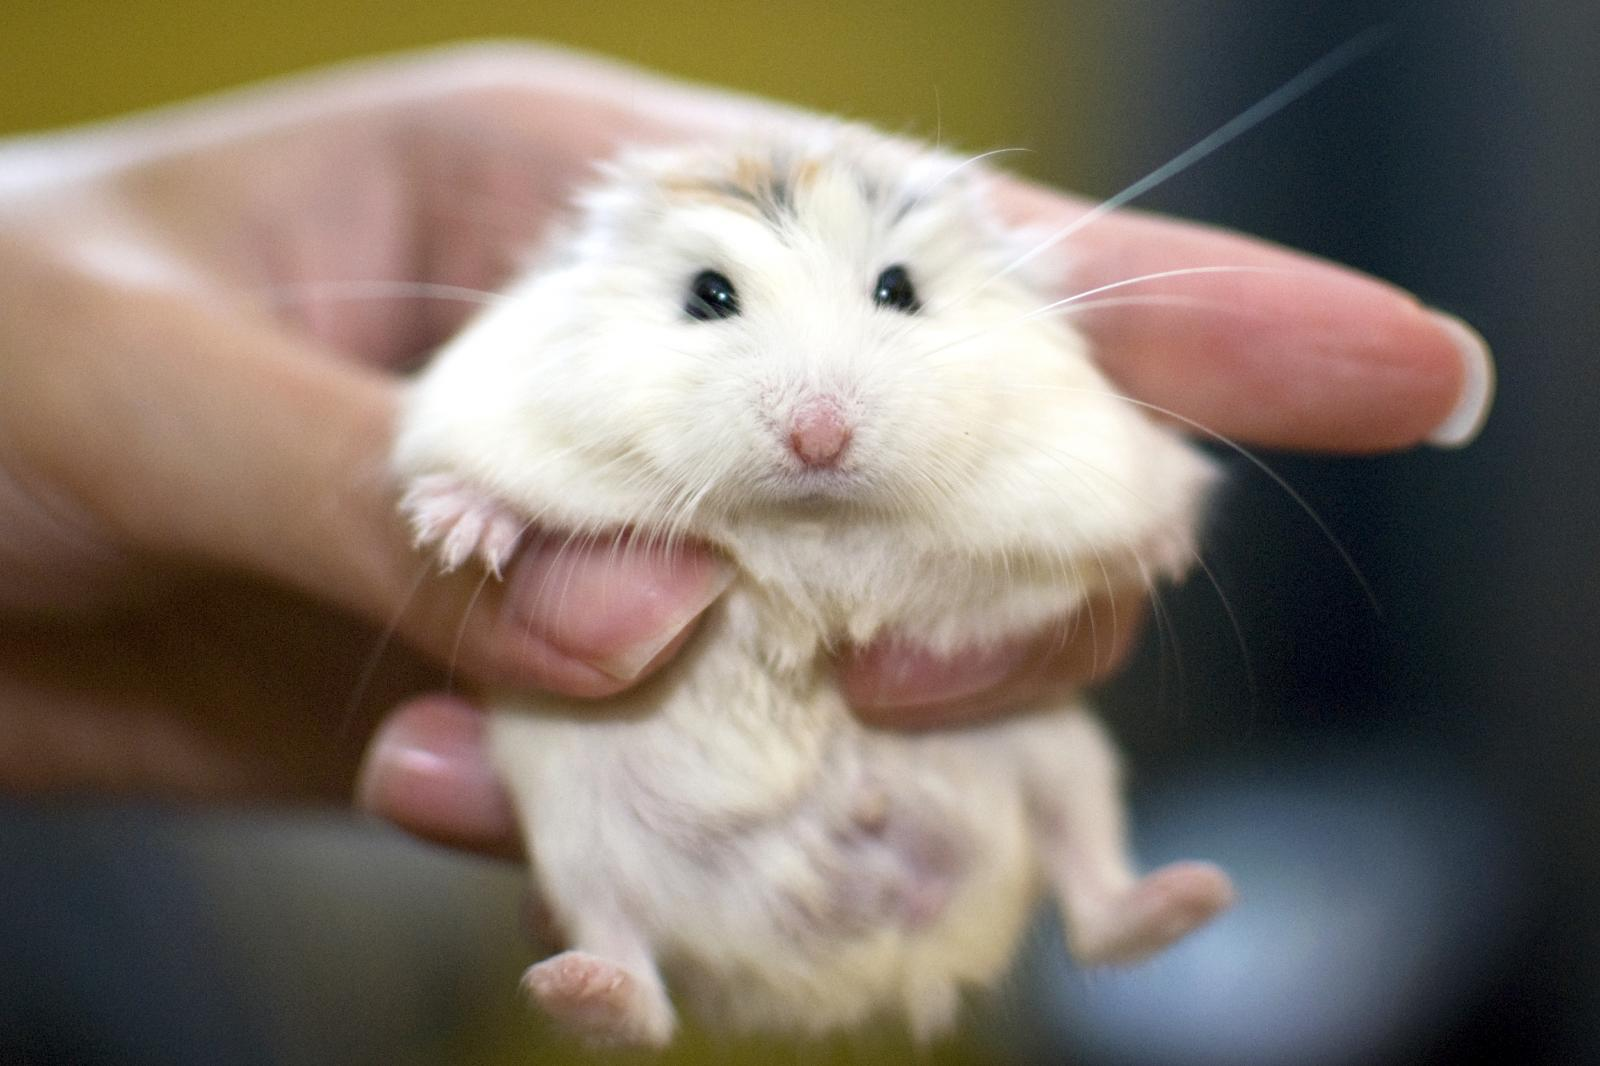 A tame white face roborovski dwarf hamster being held